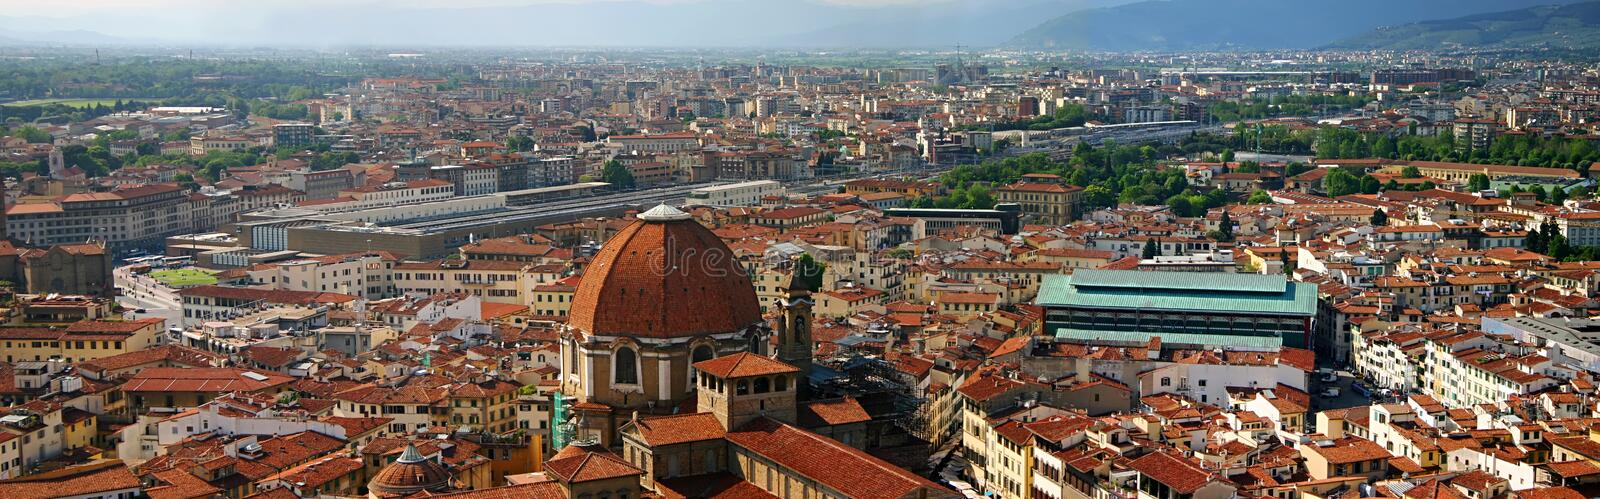 Panorama de Firenze foto de stock royalty free